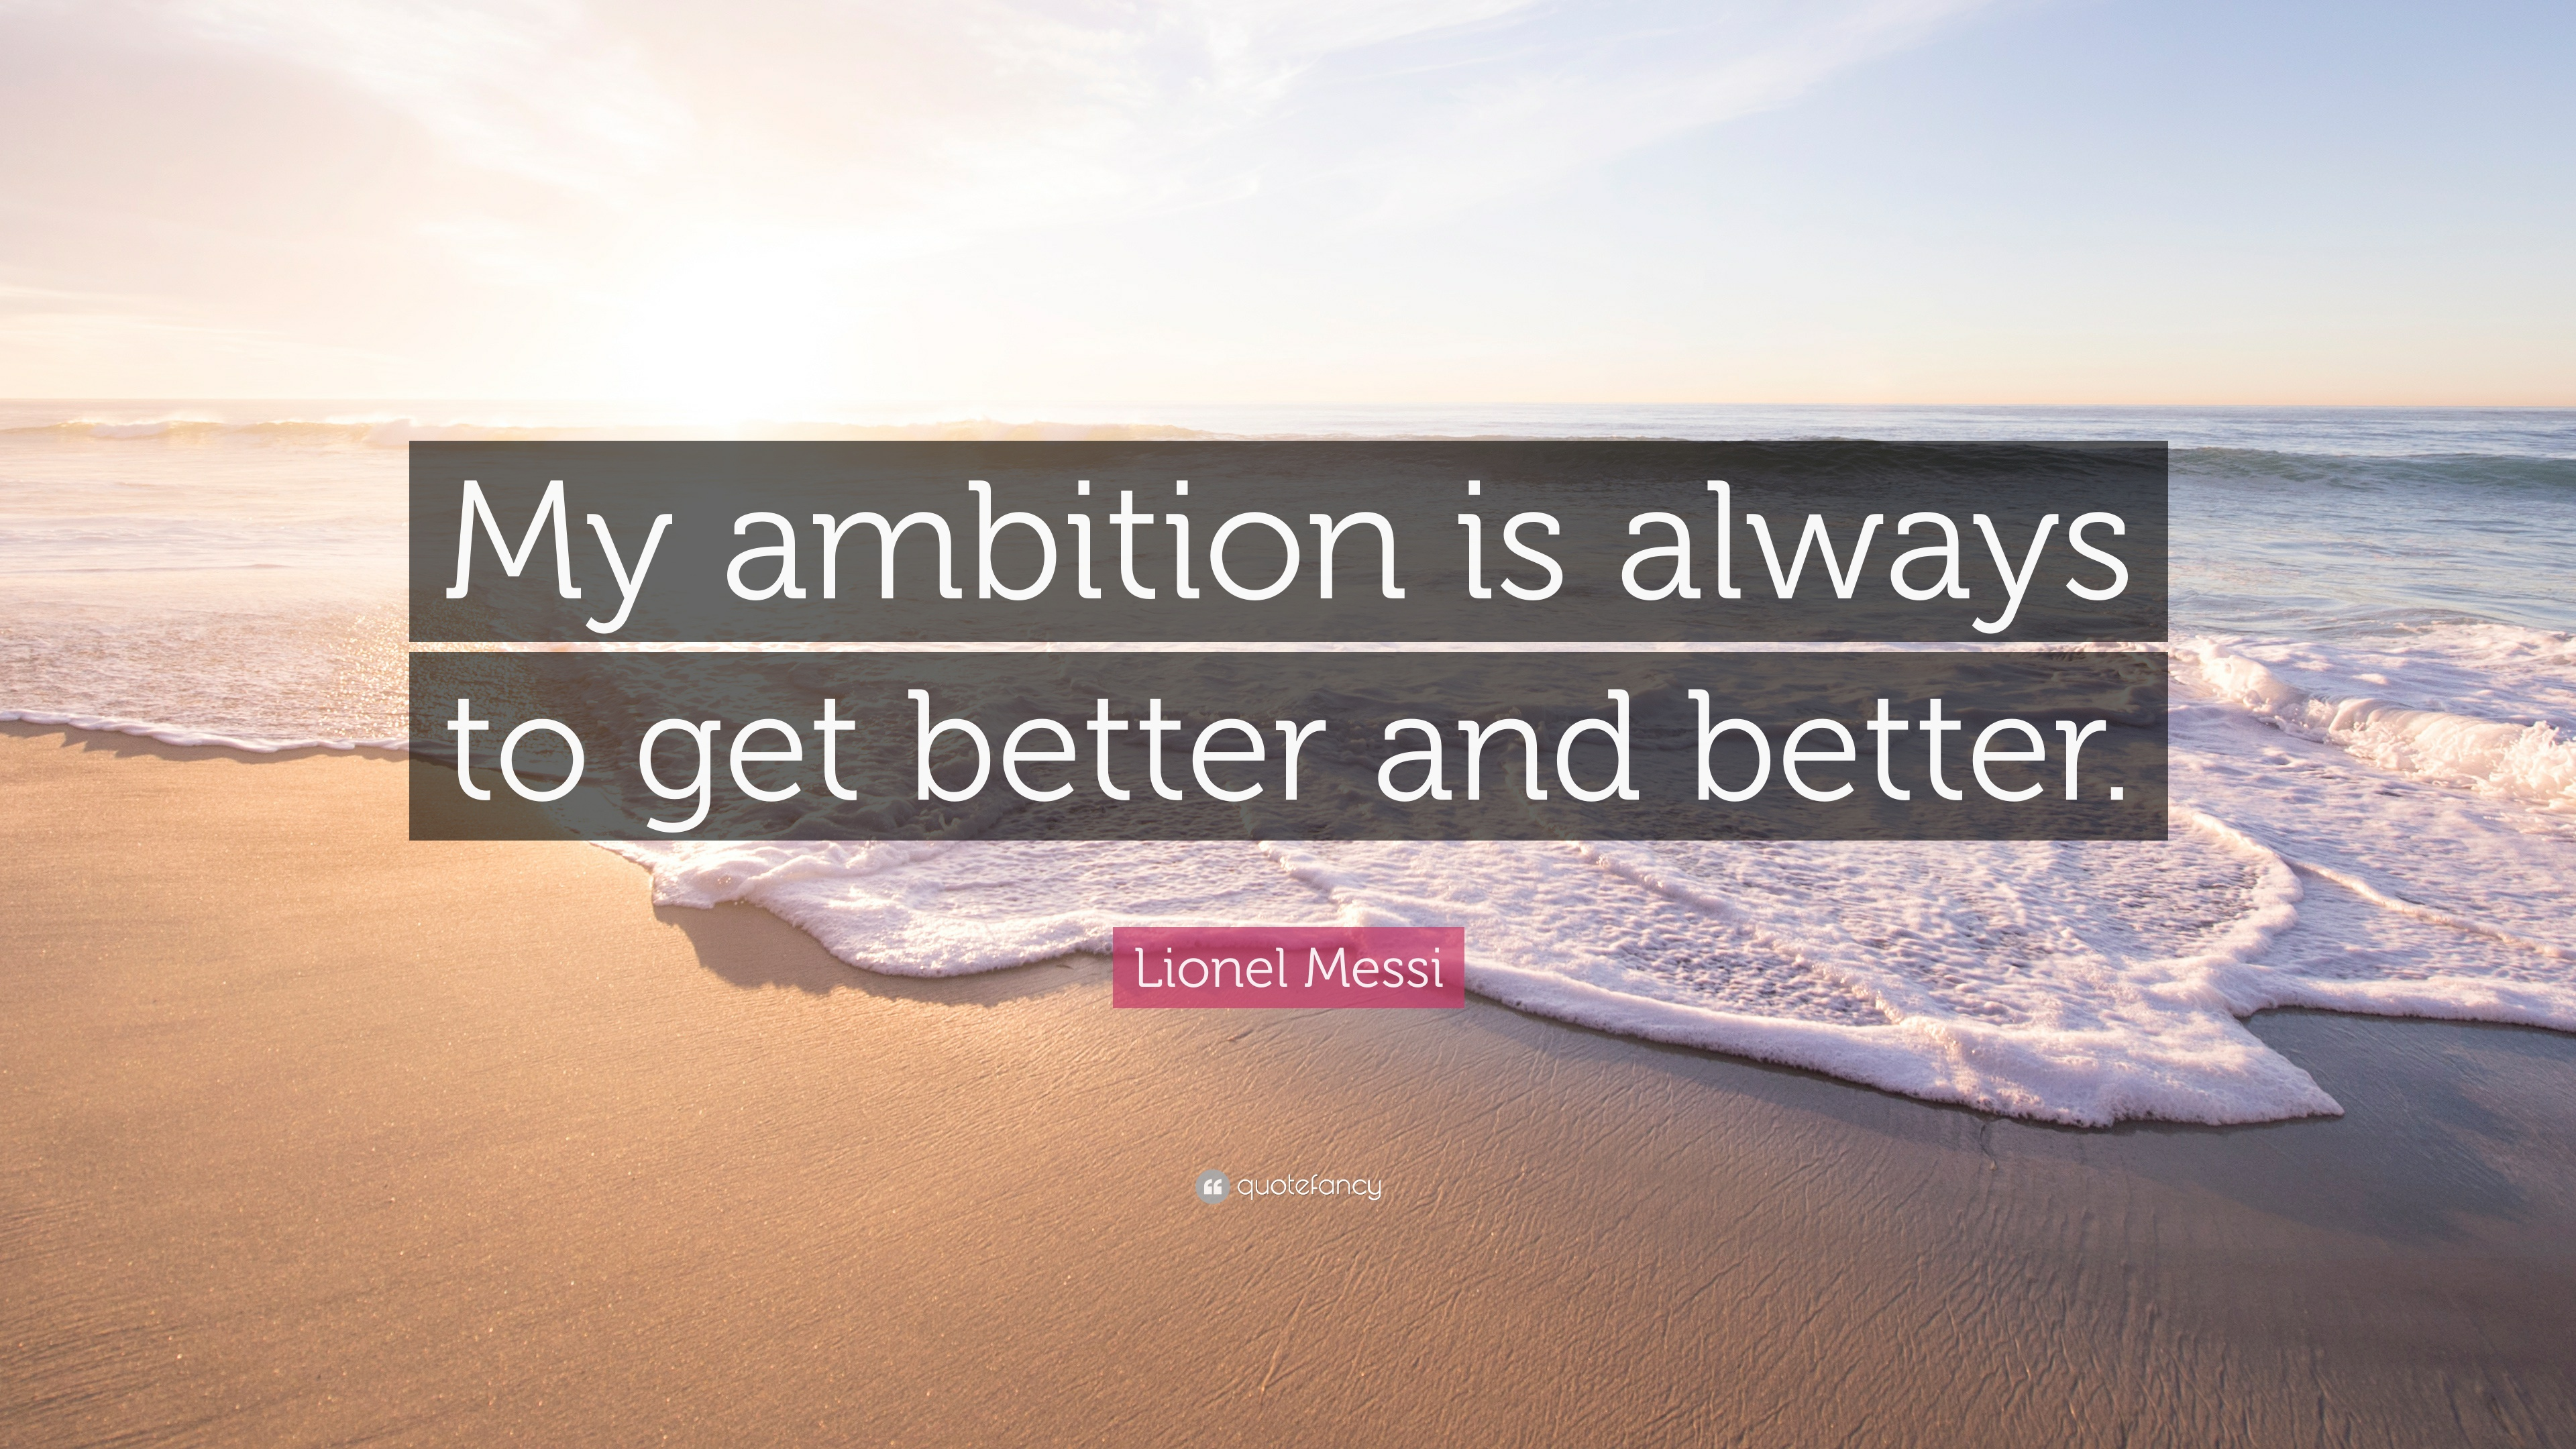 Lionel Messi Quote: U201cMy Ambition Is Always To Get Better And Better.u201d